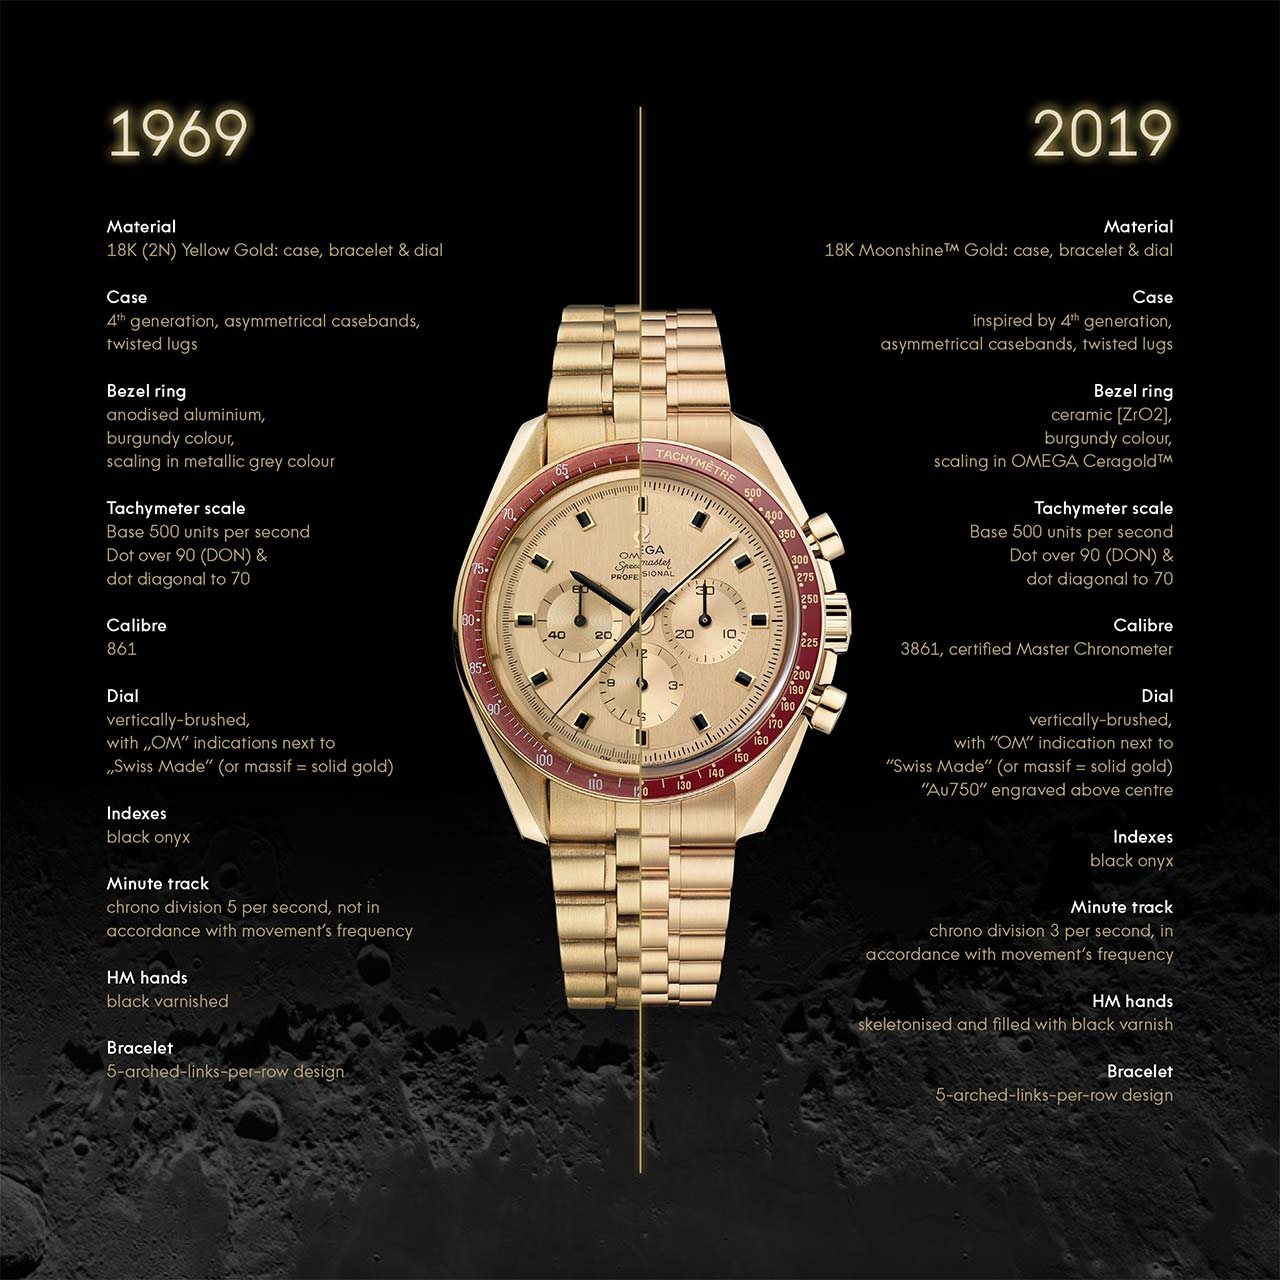 91de3ae2407 Produced in 1,014 pieces and delivered with a five-year warranty, the new  Speedmaster Apollo 11 50th Anniversary Limited Edition has been crafted  from an ...